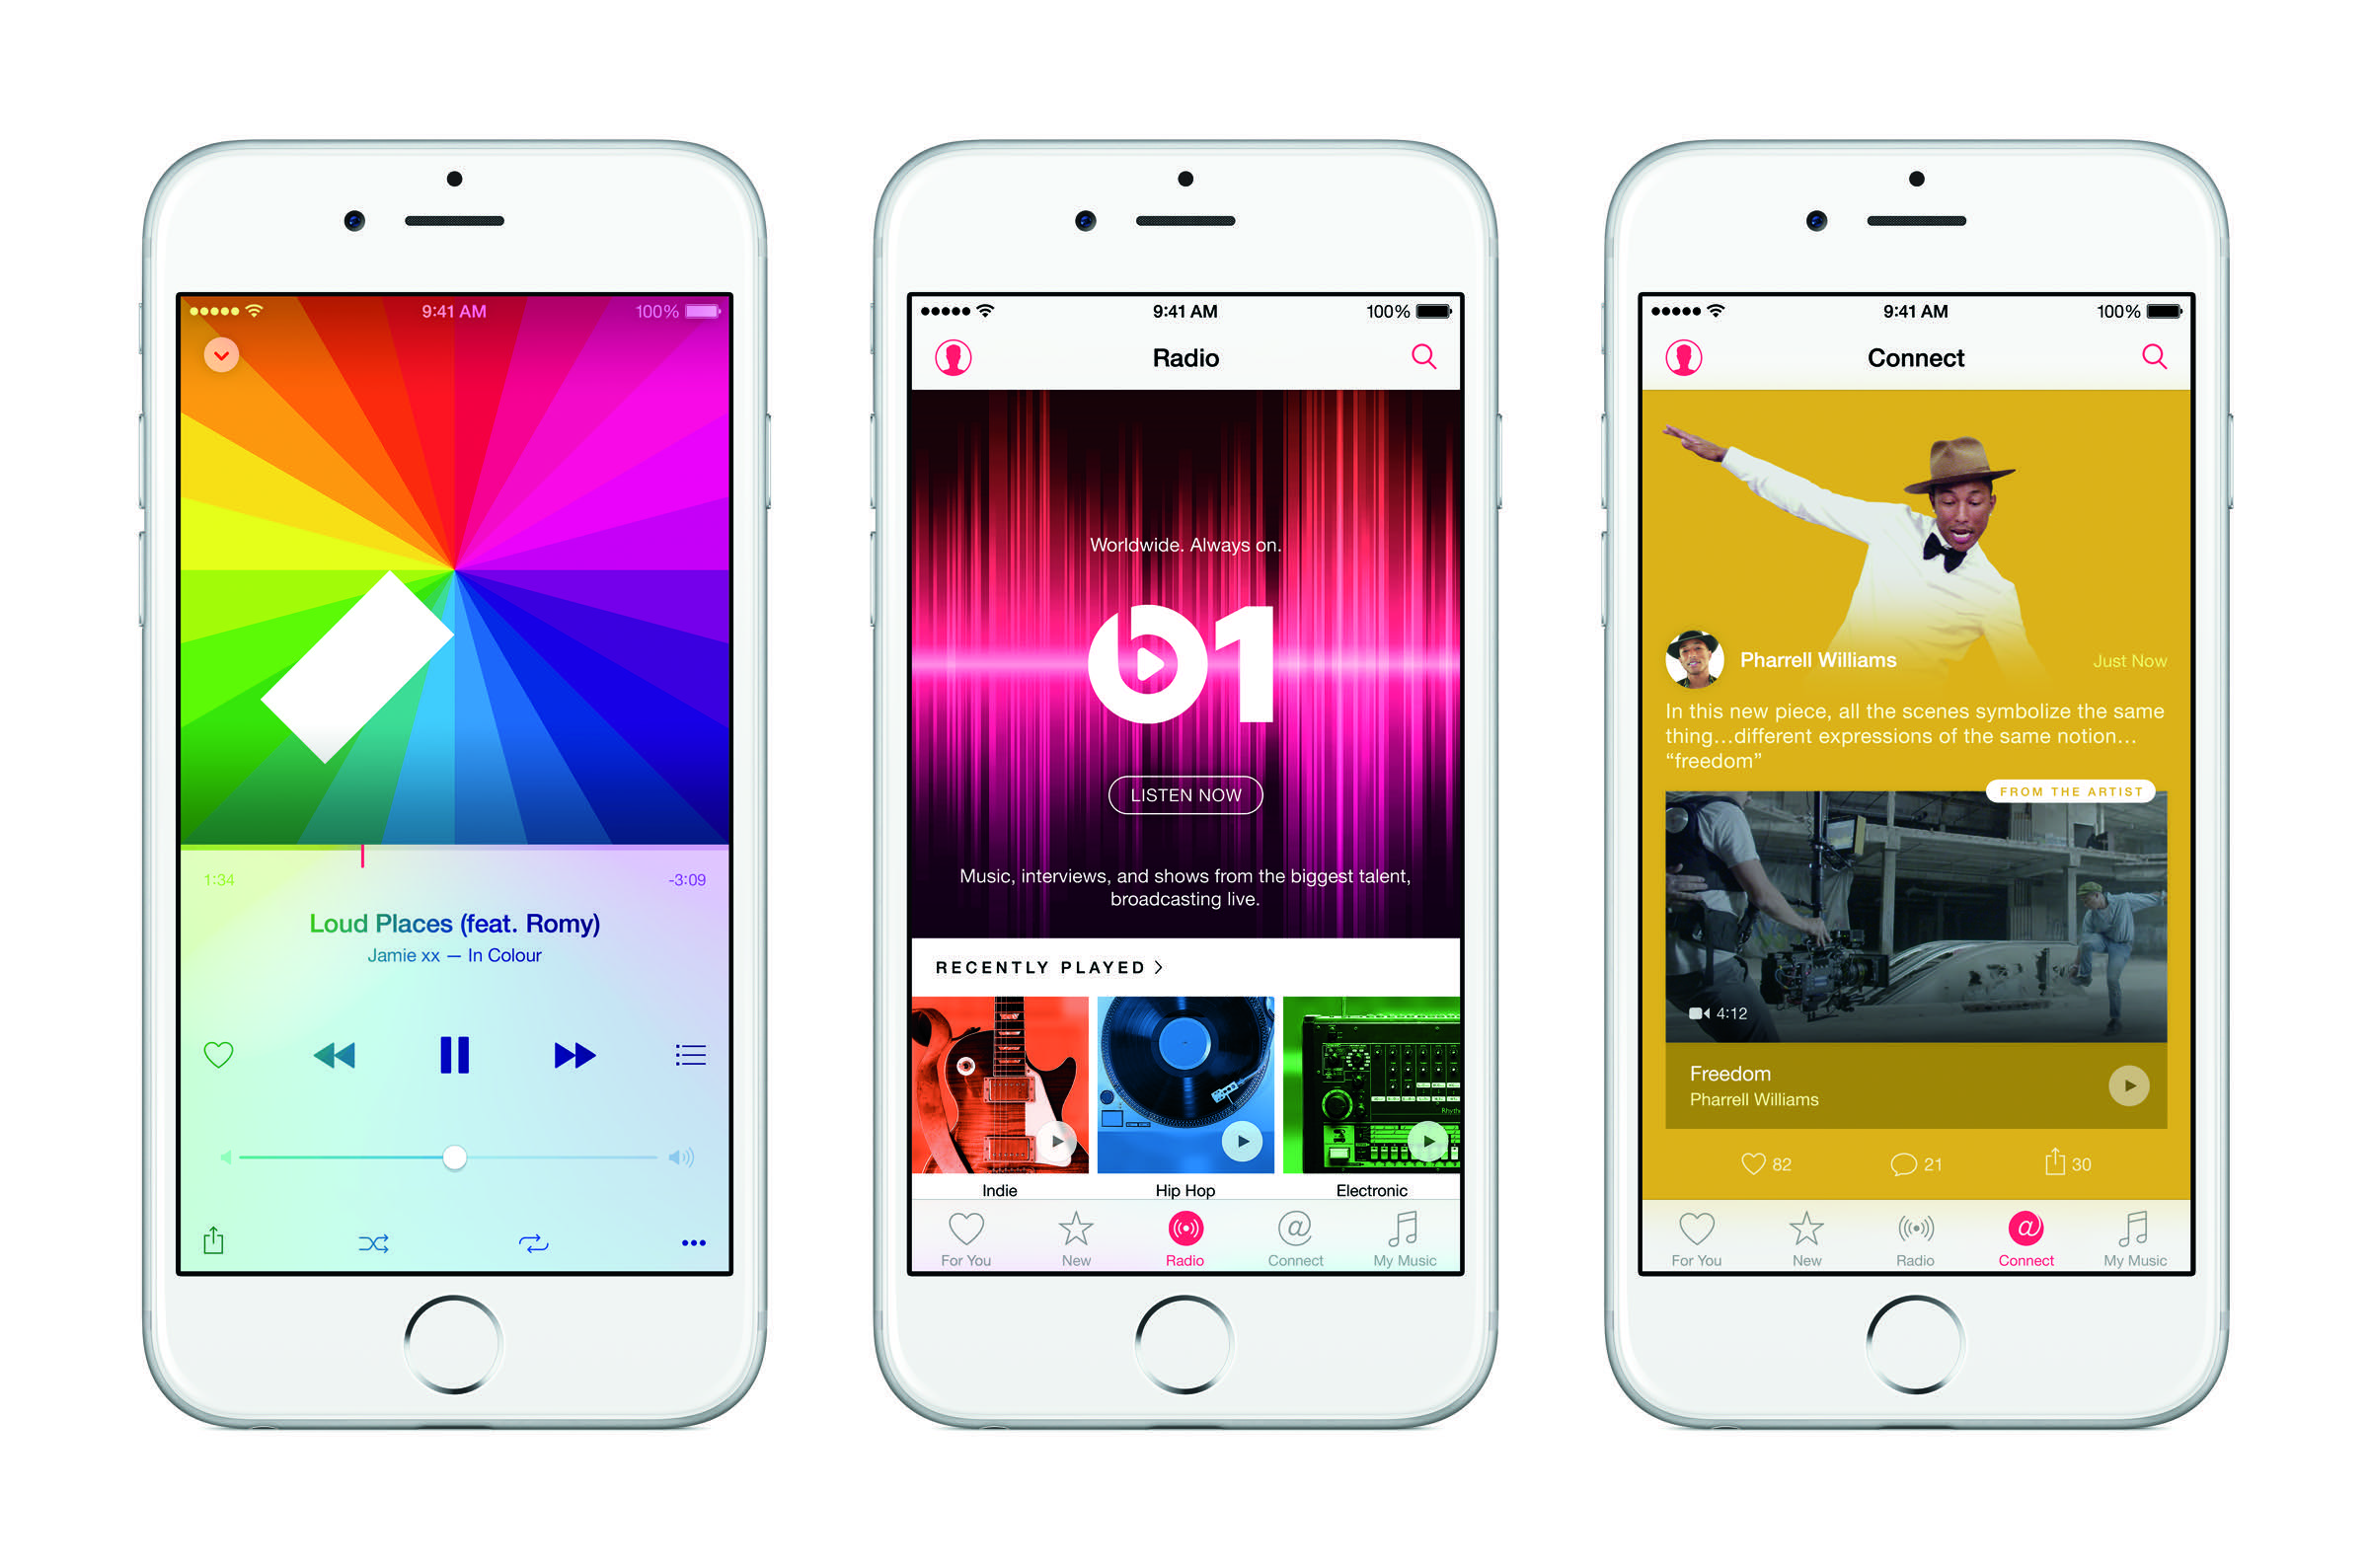 Predictions made for Apple Music and Apple Watch